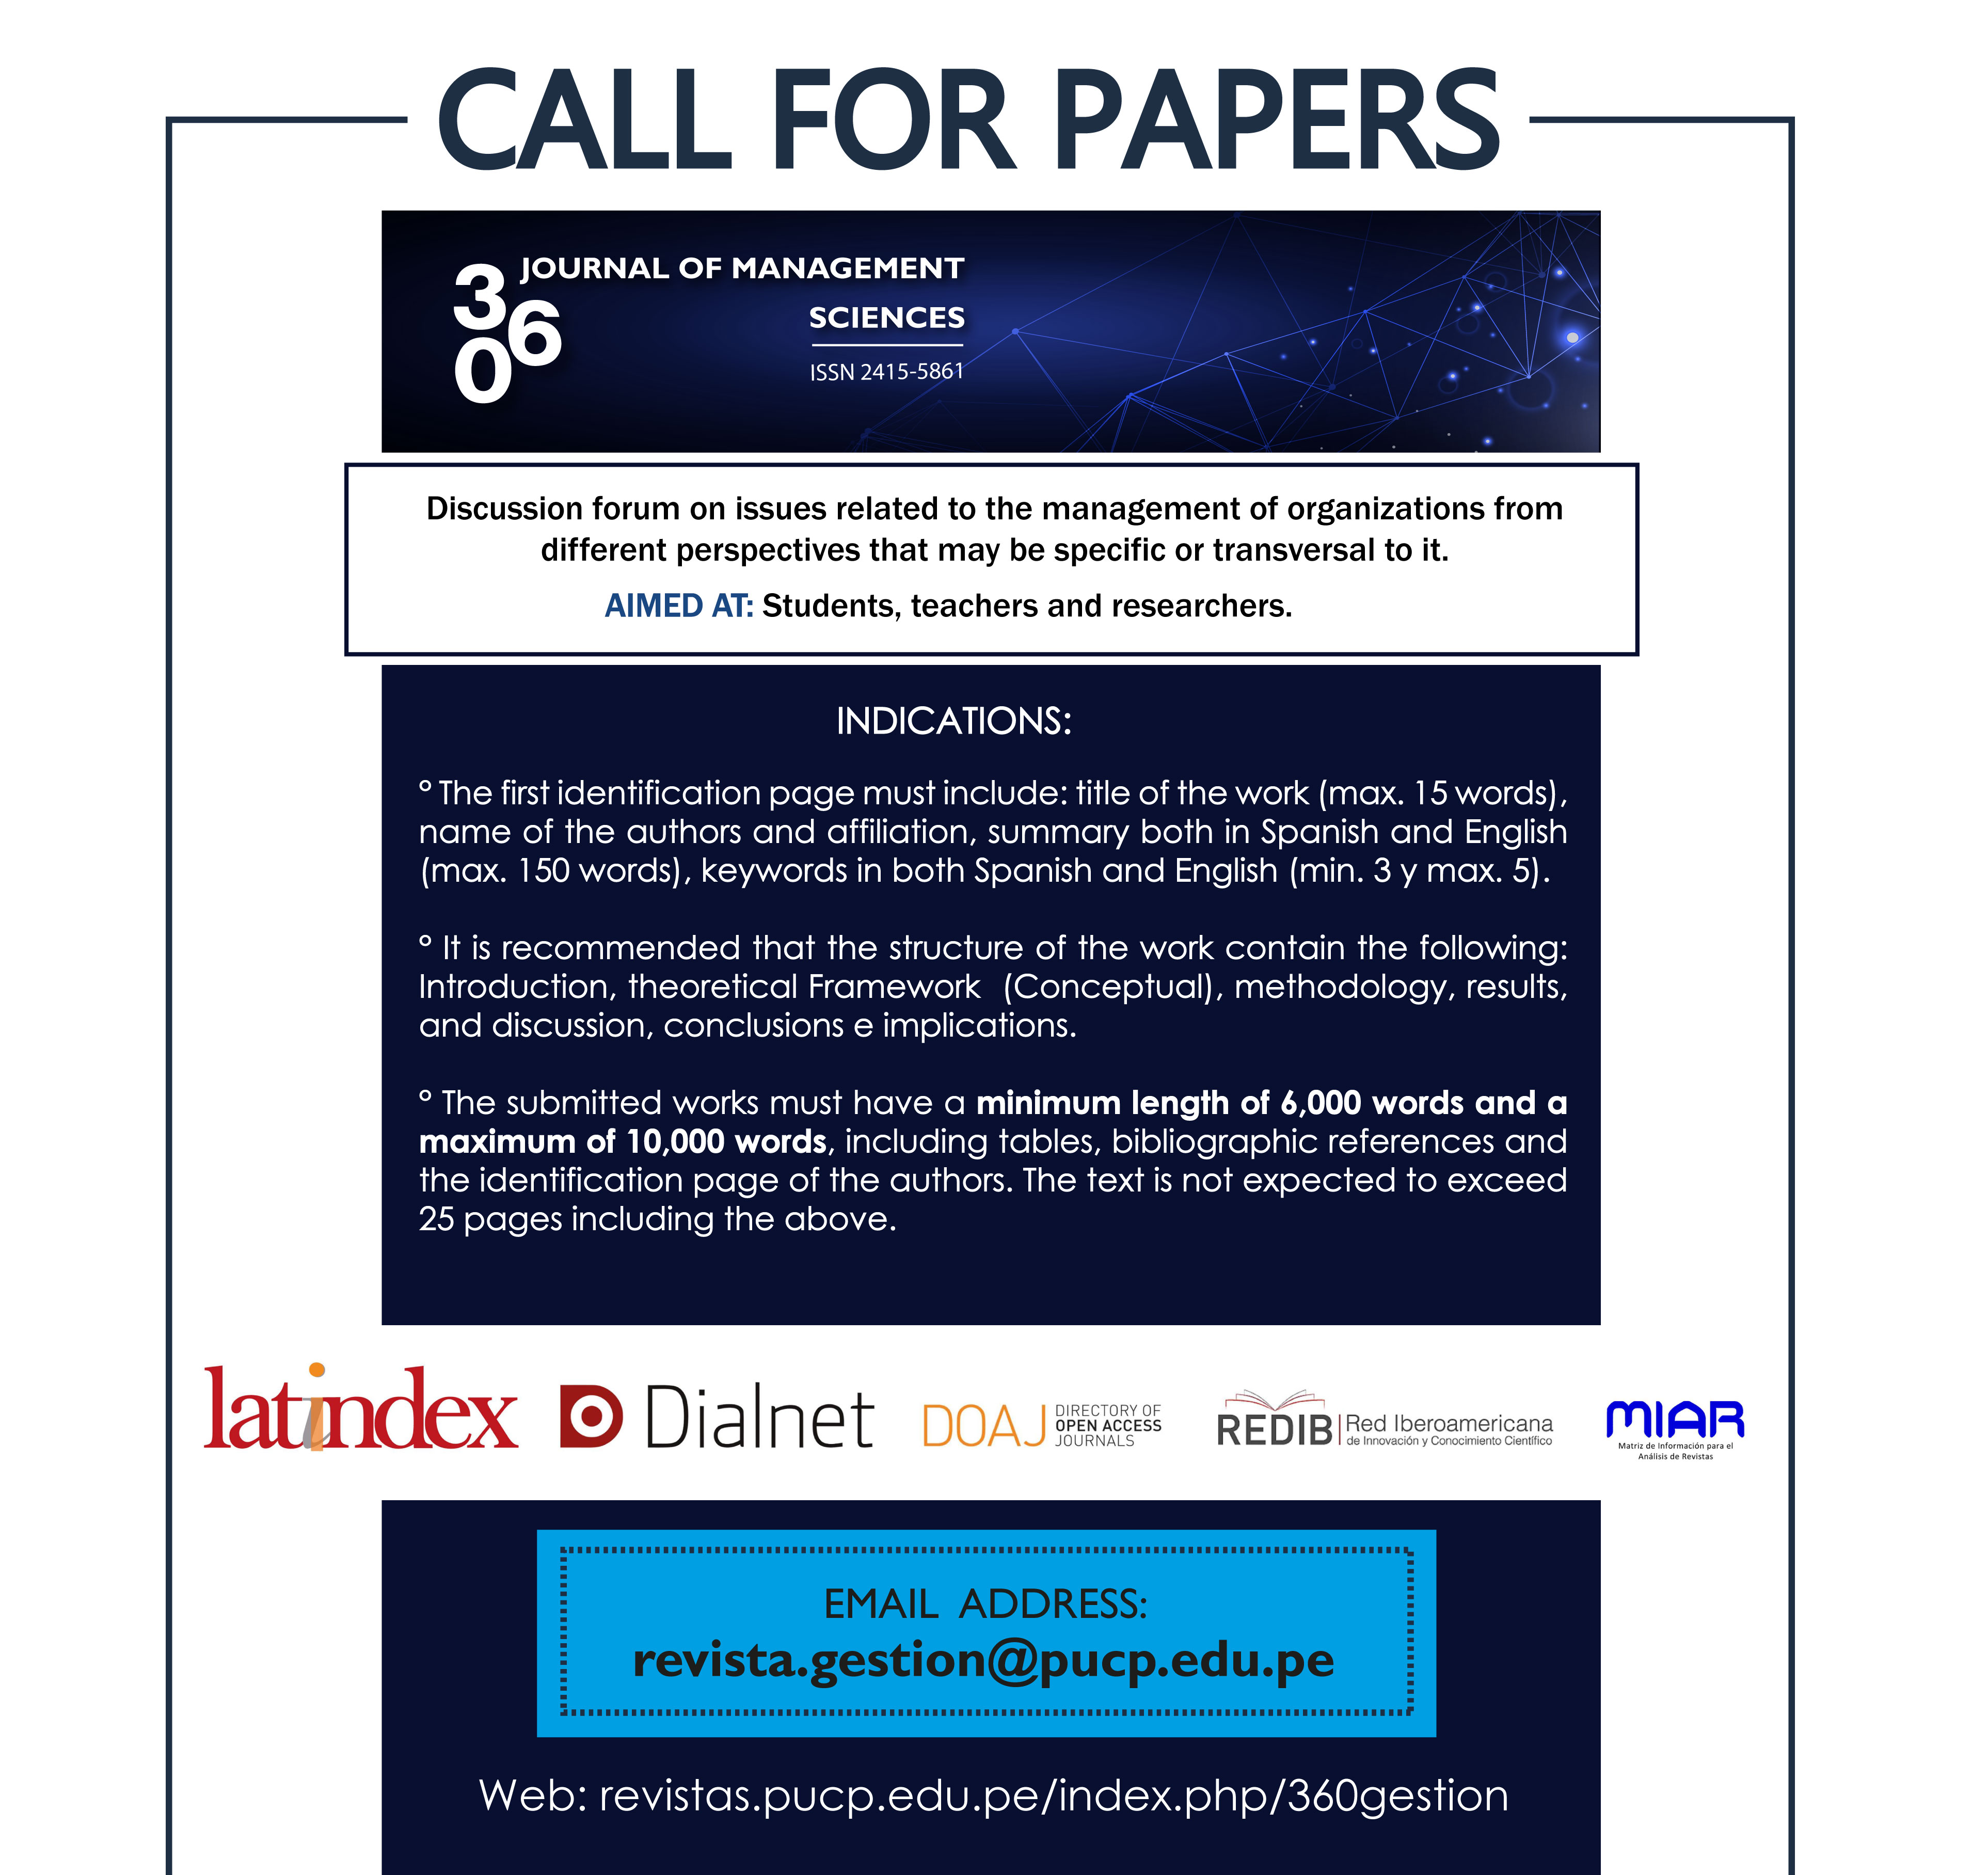 Call for Papers of 360 Journal of Management Sciences, PUCP University, Peru